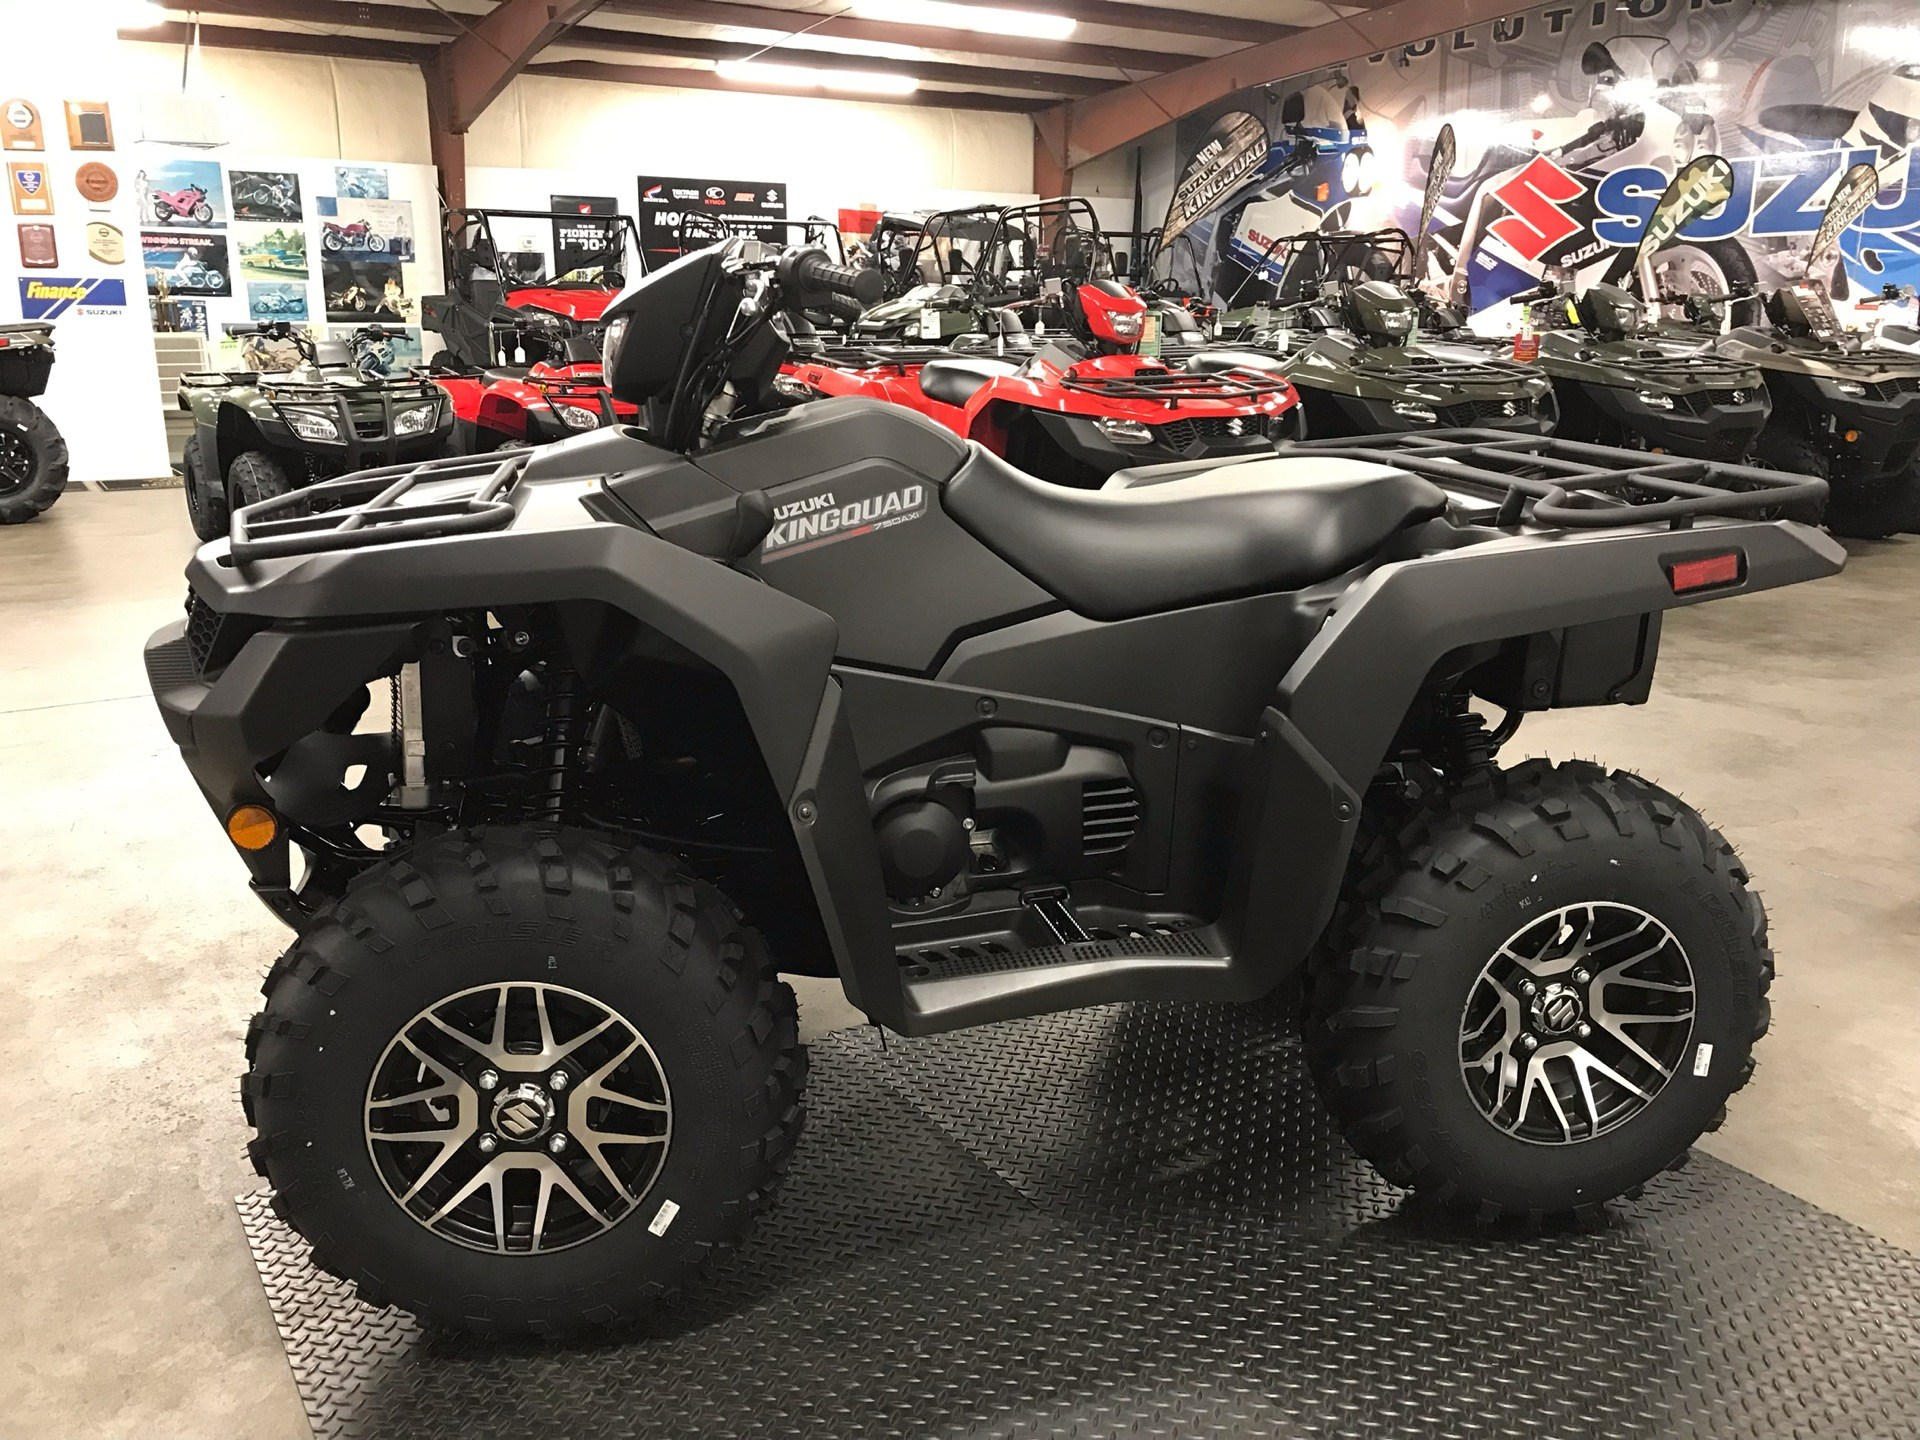 2019 Suzuki KingQuad 750AXi Power Steering SE+ in Sanford, North Carolina - Photo 5